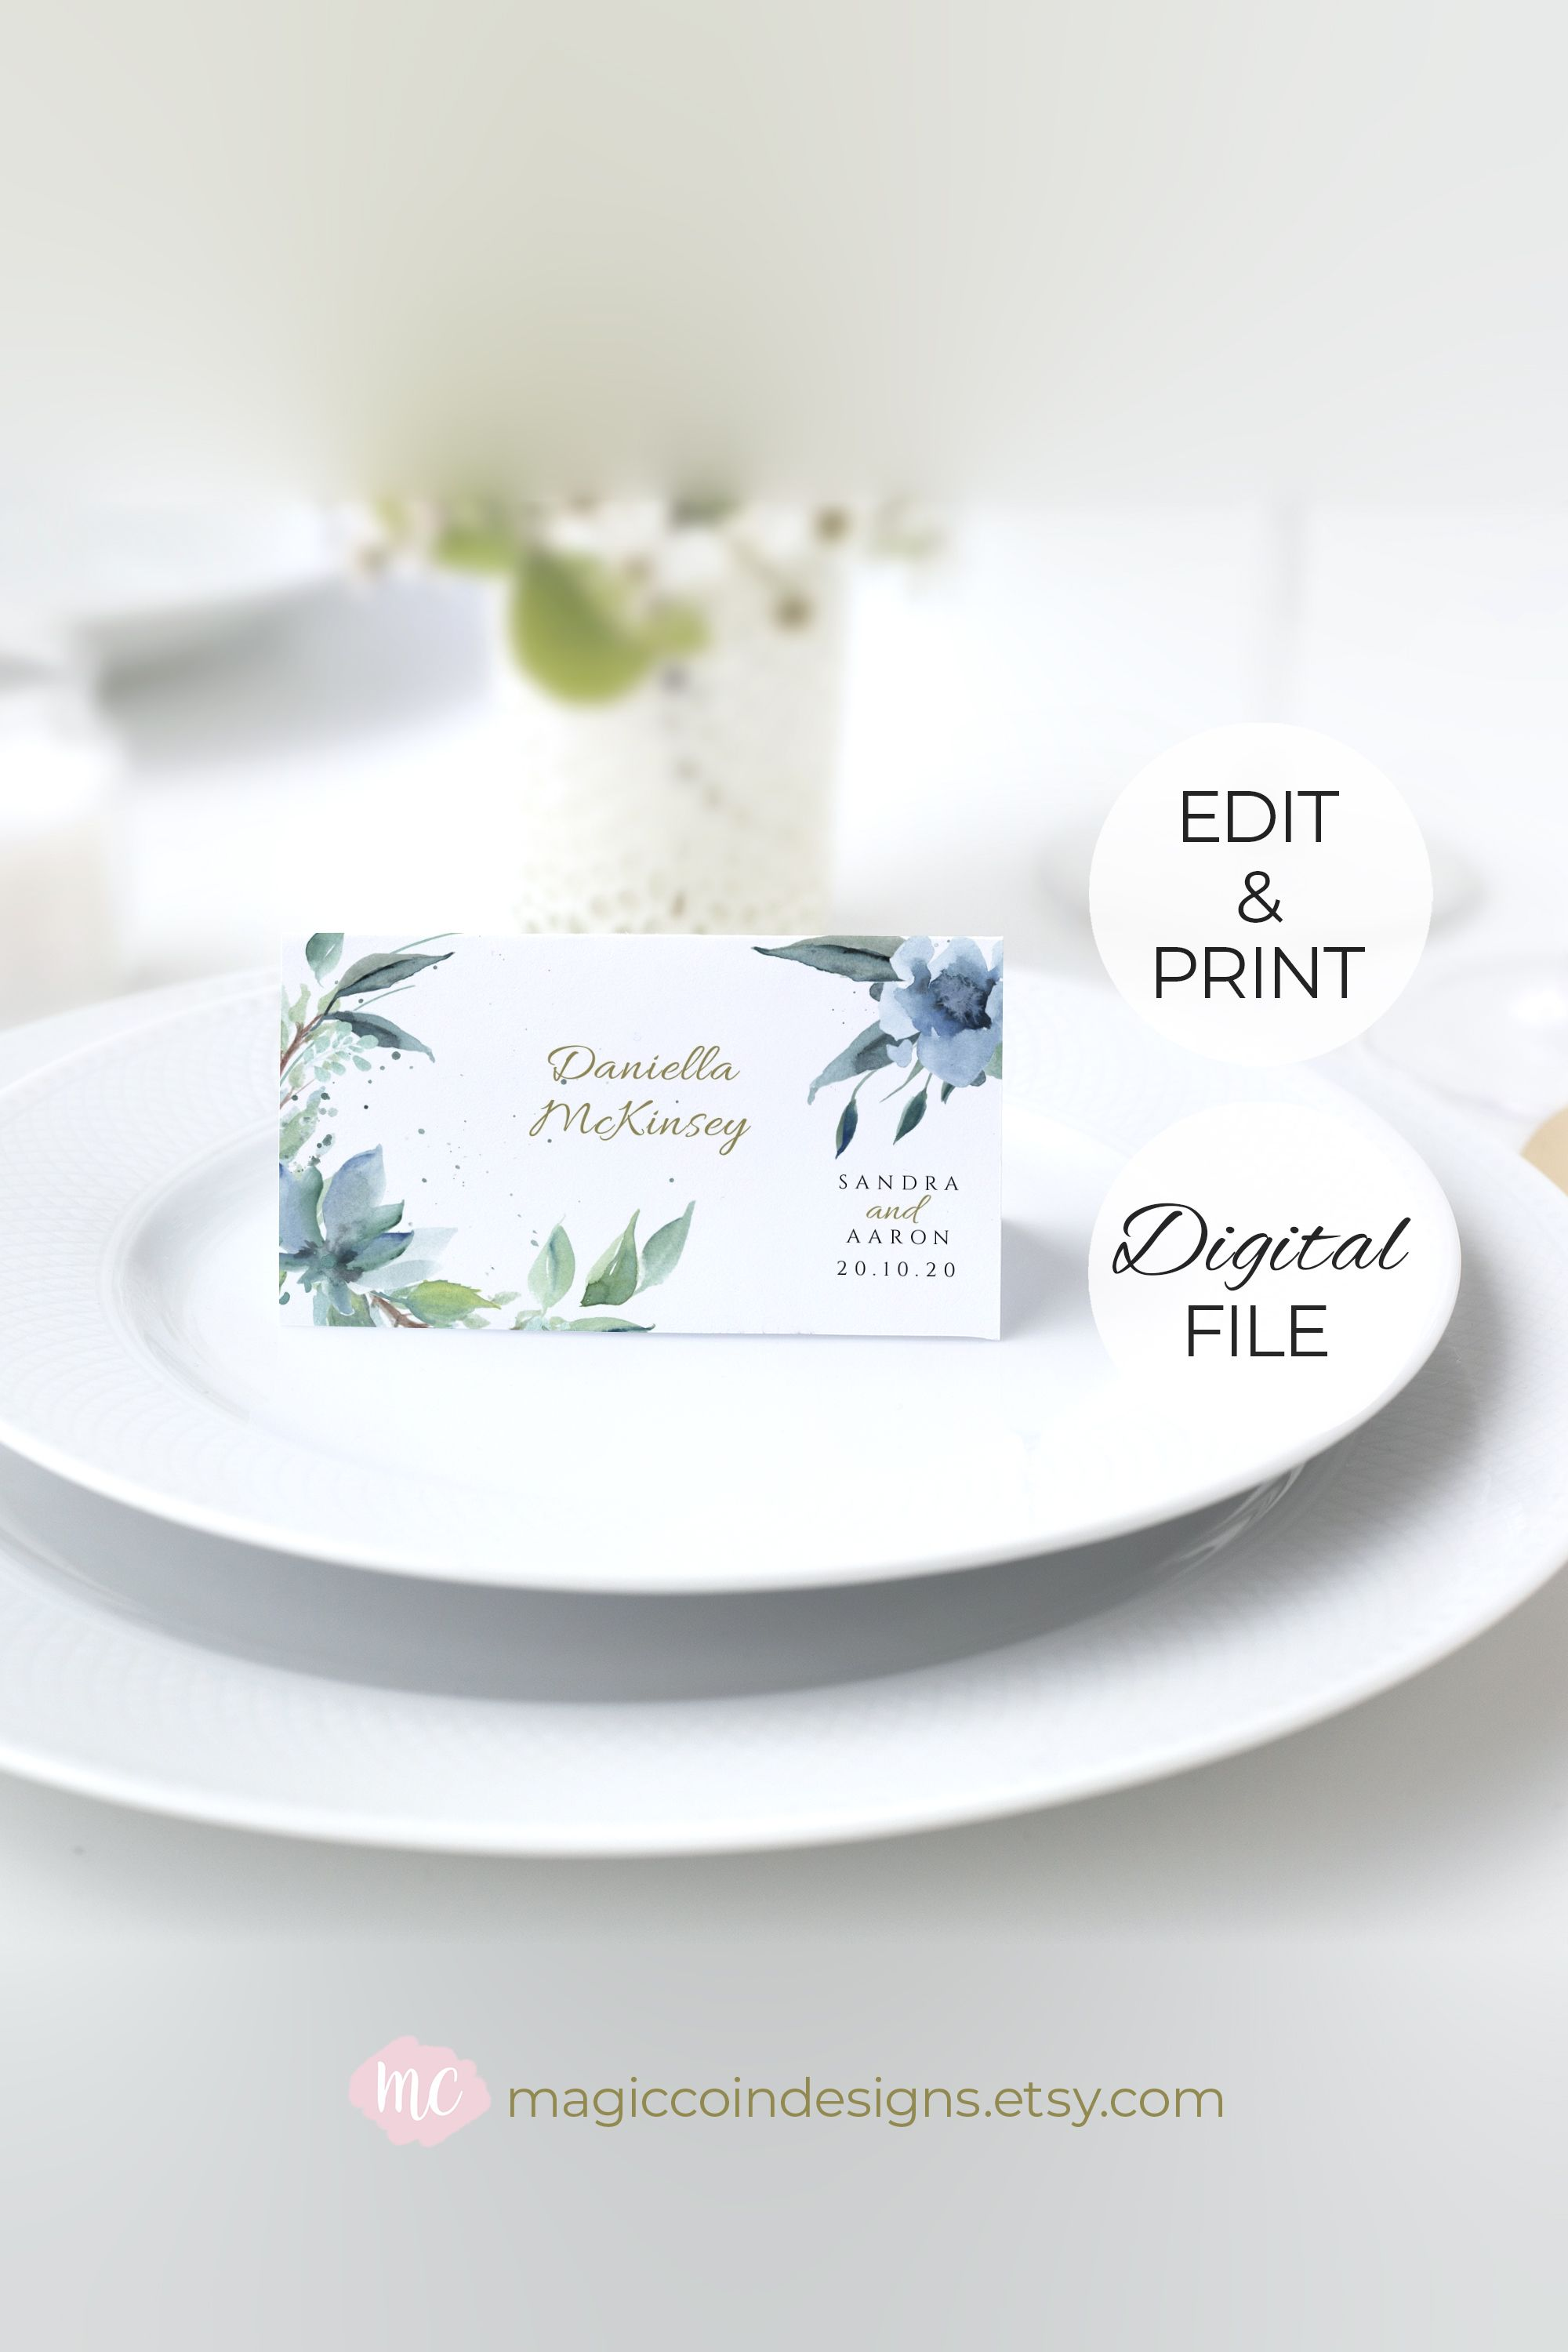 Floral Place Card Blue Floral Wedding Place Cards Template Table Seating Card Digital Download R12 In 2020 Wedding Place Cards Wedding Place Card Templates Place Card Template